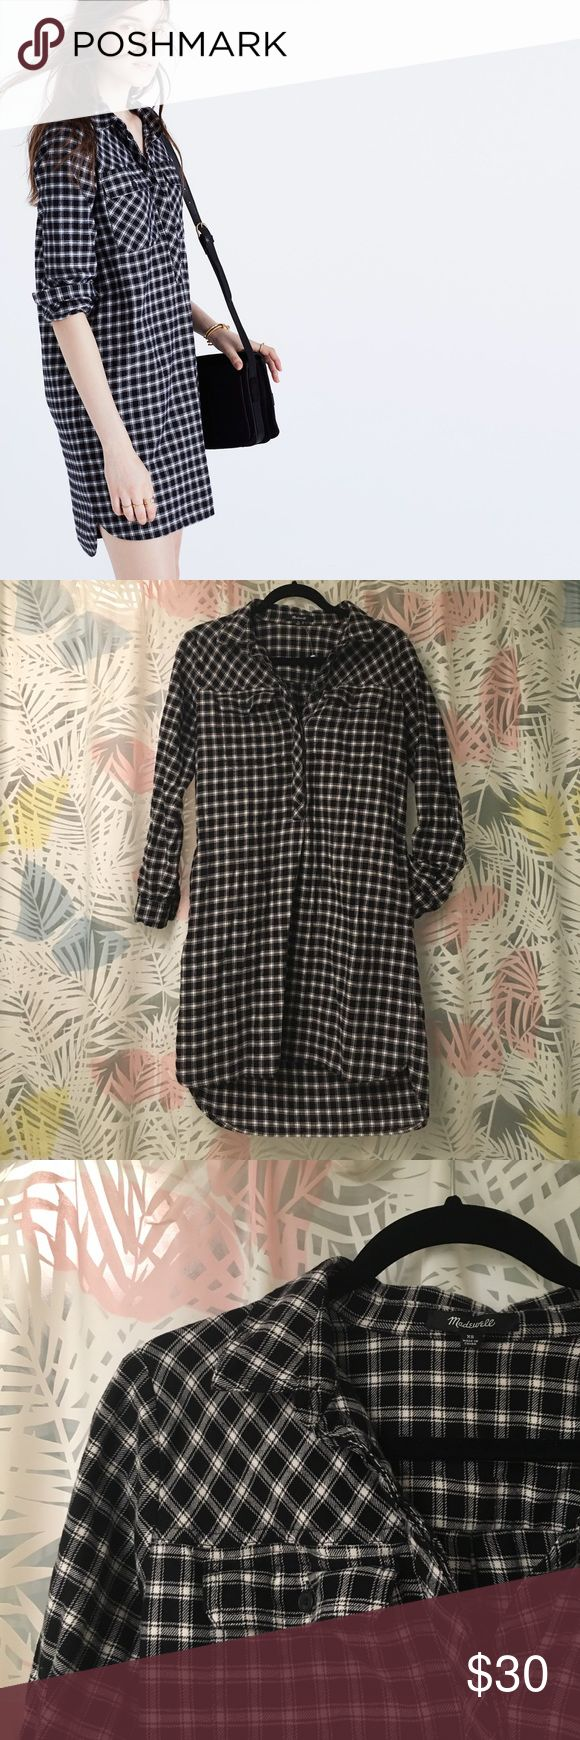 Madewell flannel shirt dress Warm but lightweight flannel shirt dress with pockets! Hem is slightly lower in the back which provides coverage. Sleeves can be rolled up. Can be unbuttoned to mid-chest. Never worn, but washed once. Madewell Dresses Long Sleeve